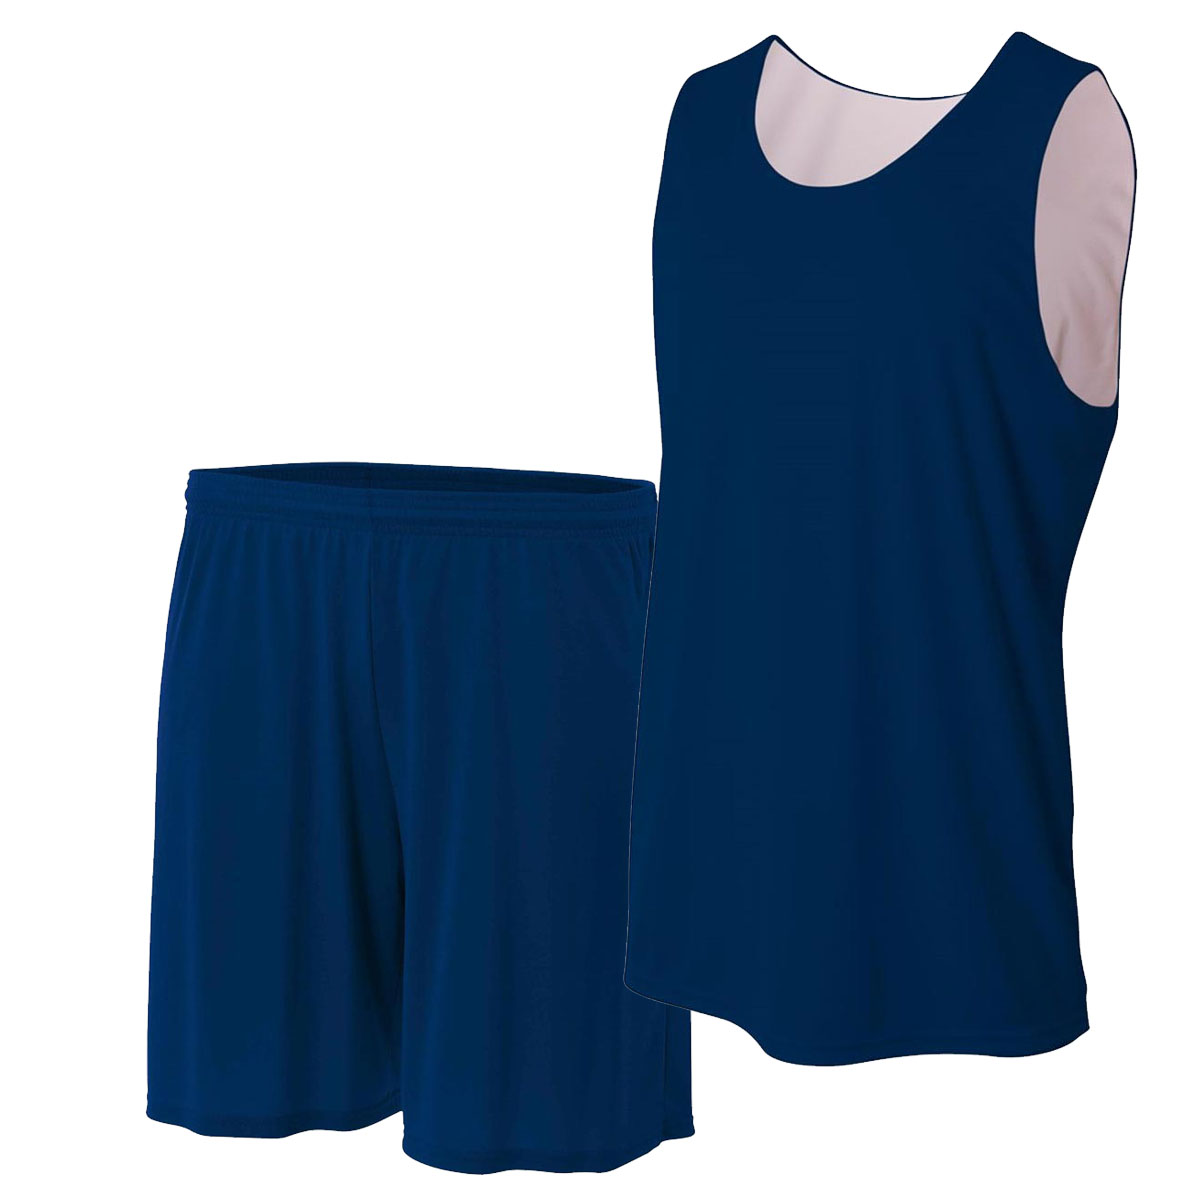 Reversible Basketball Uniforms Manufacturers in Rajkot